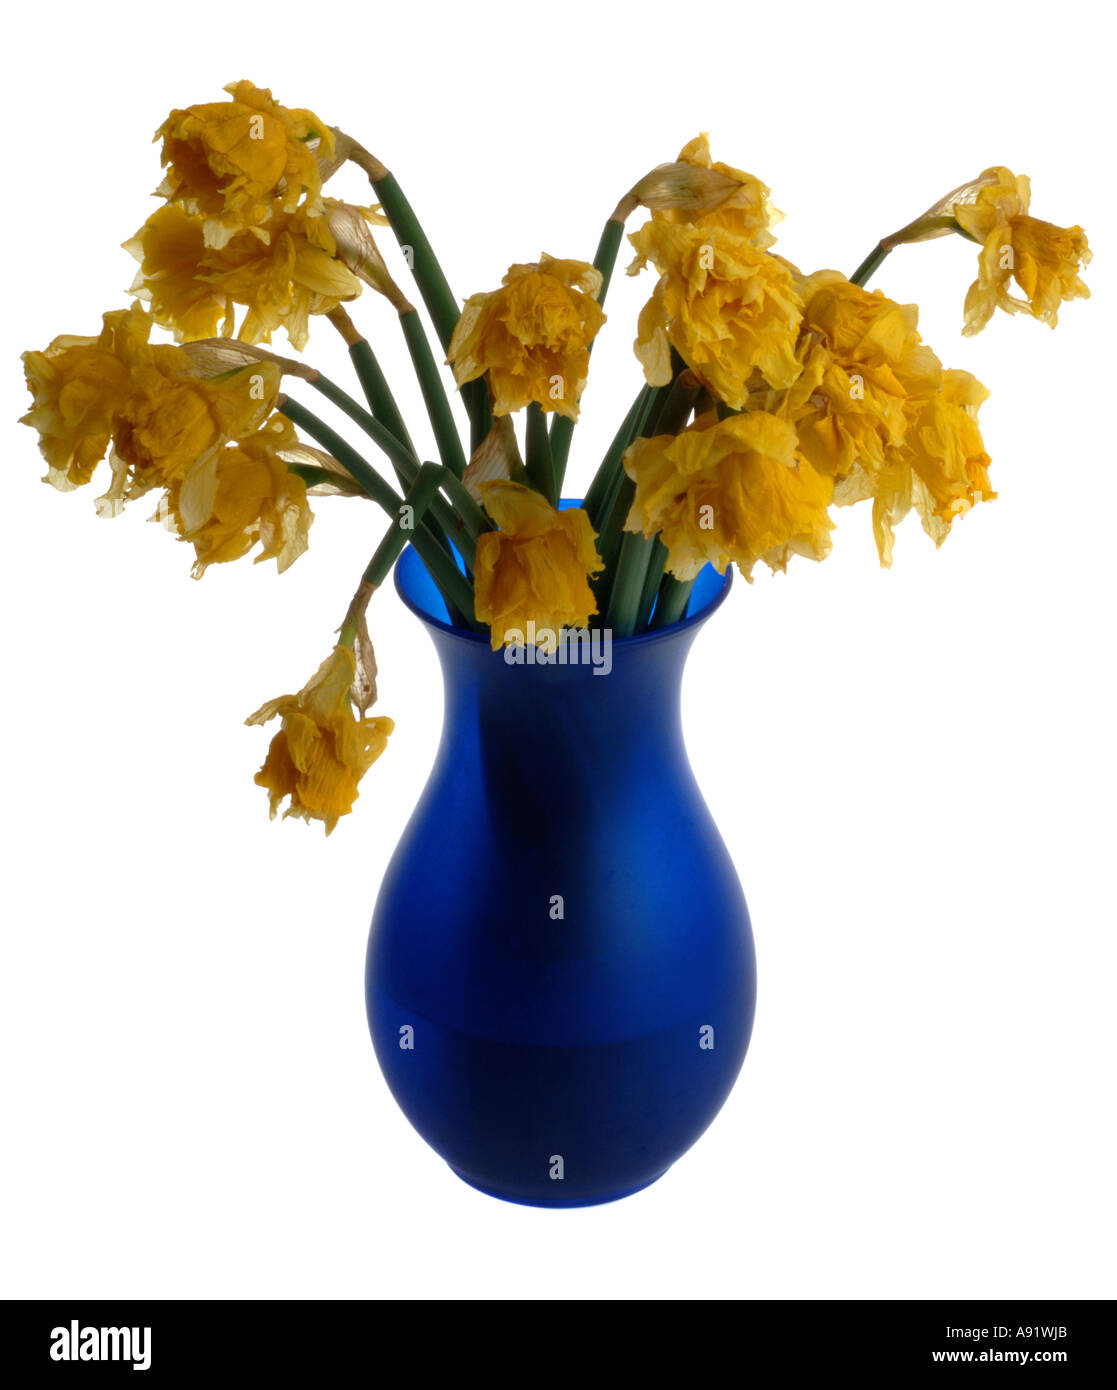 Dead flowers in a vase - Stock Image